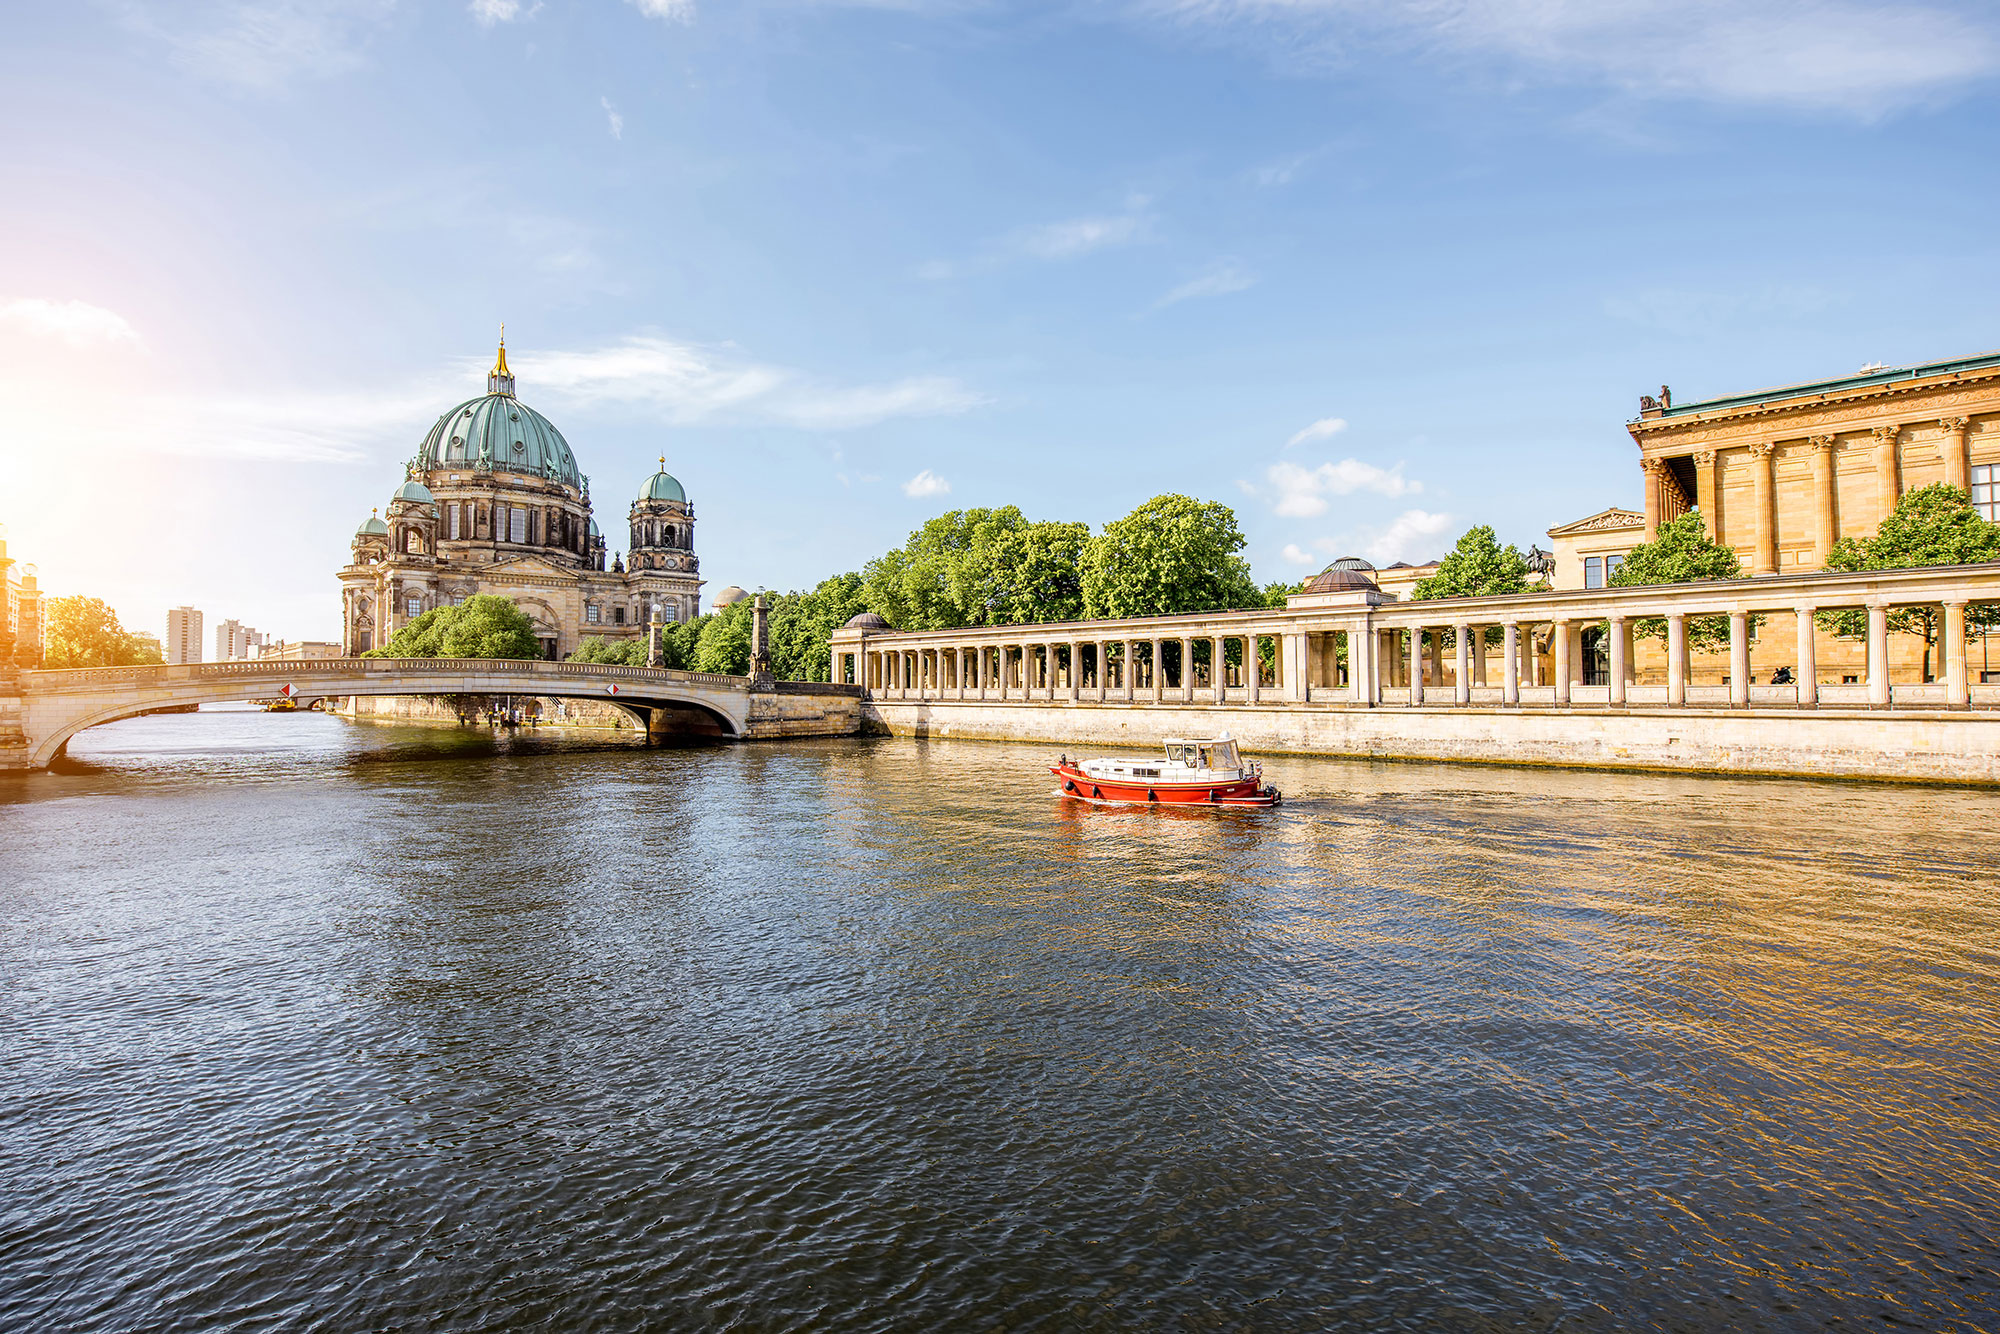 Sunrise view on the riverside with a National gallery building and cathedral in the old town of Berlin city.